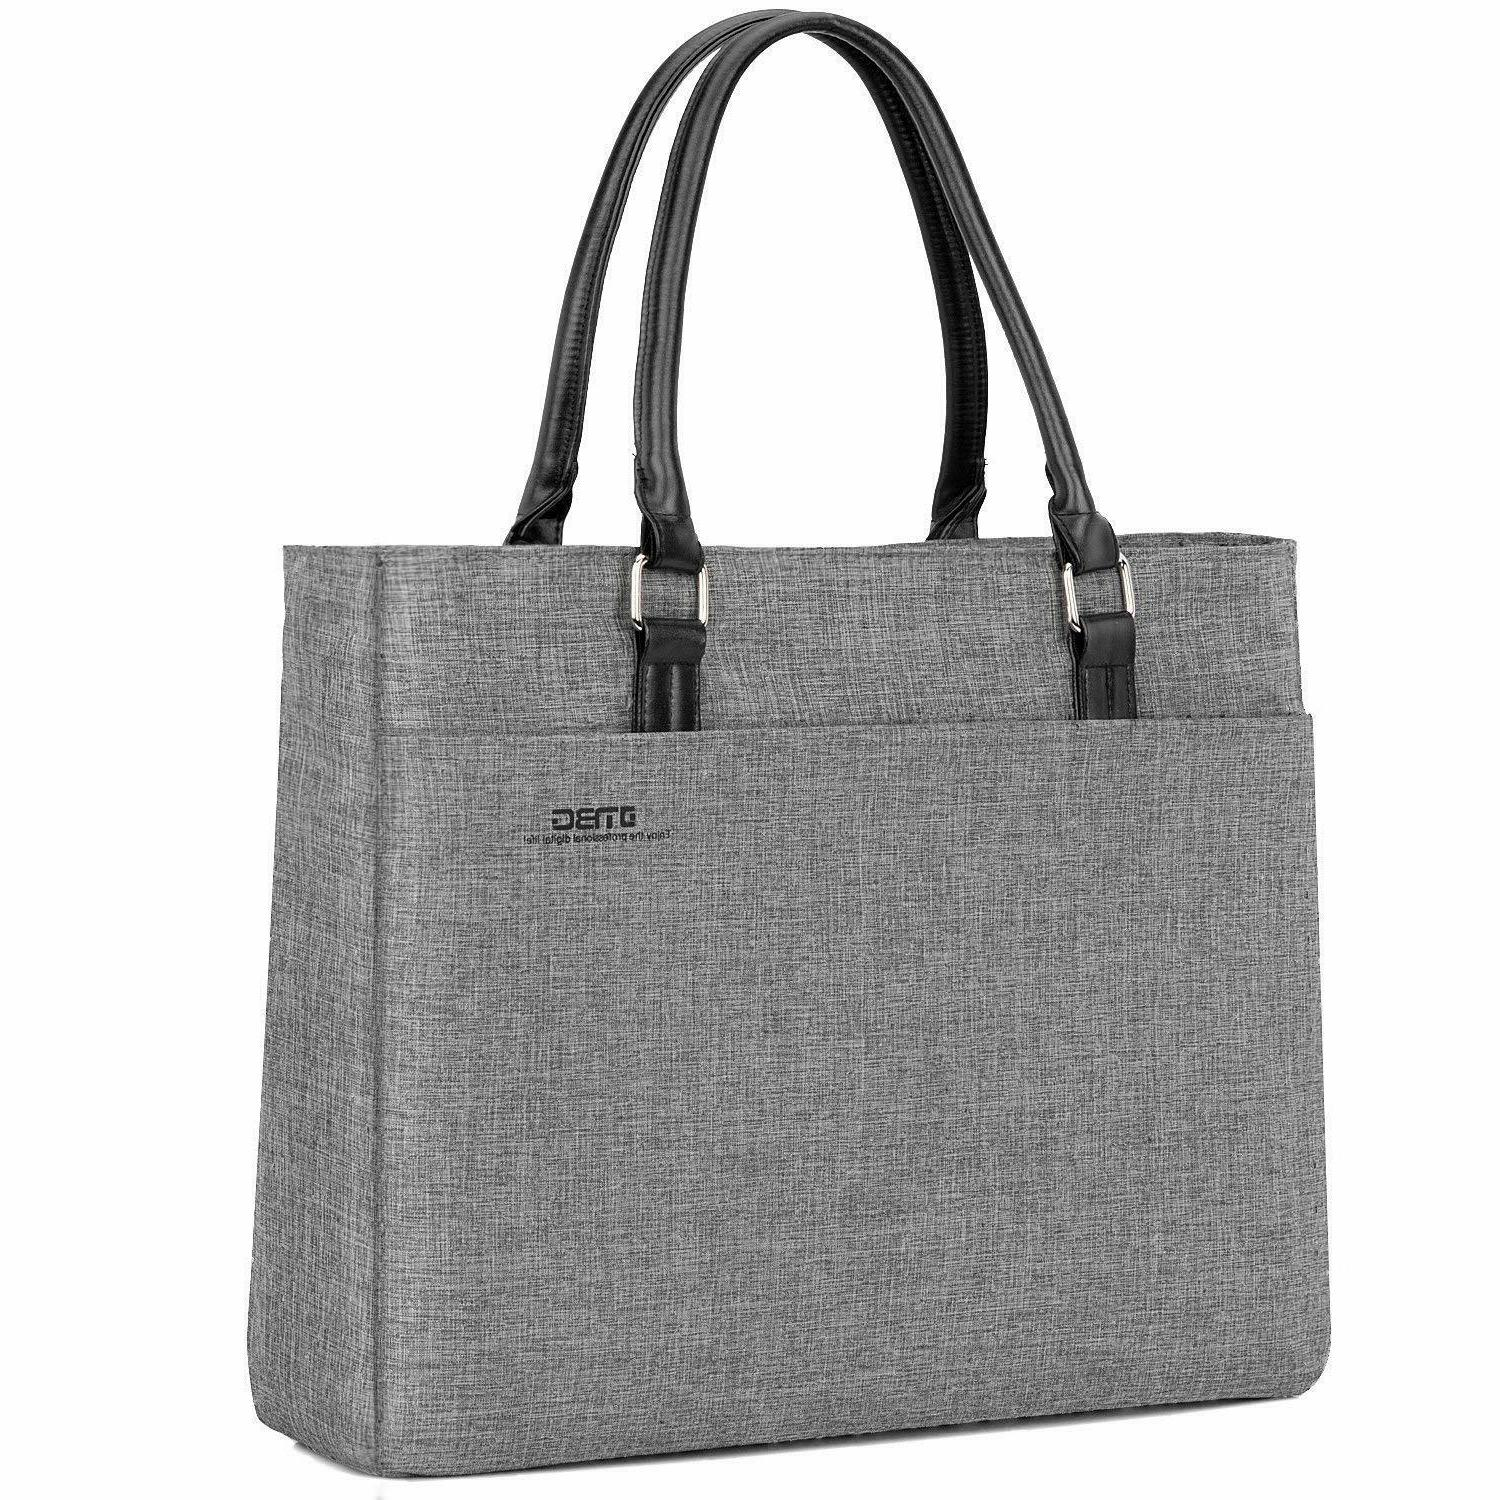 15 6inch women tote bag nylon briefcase